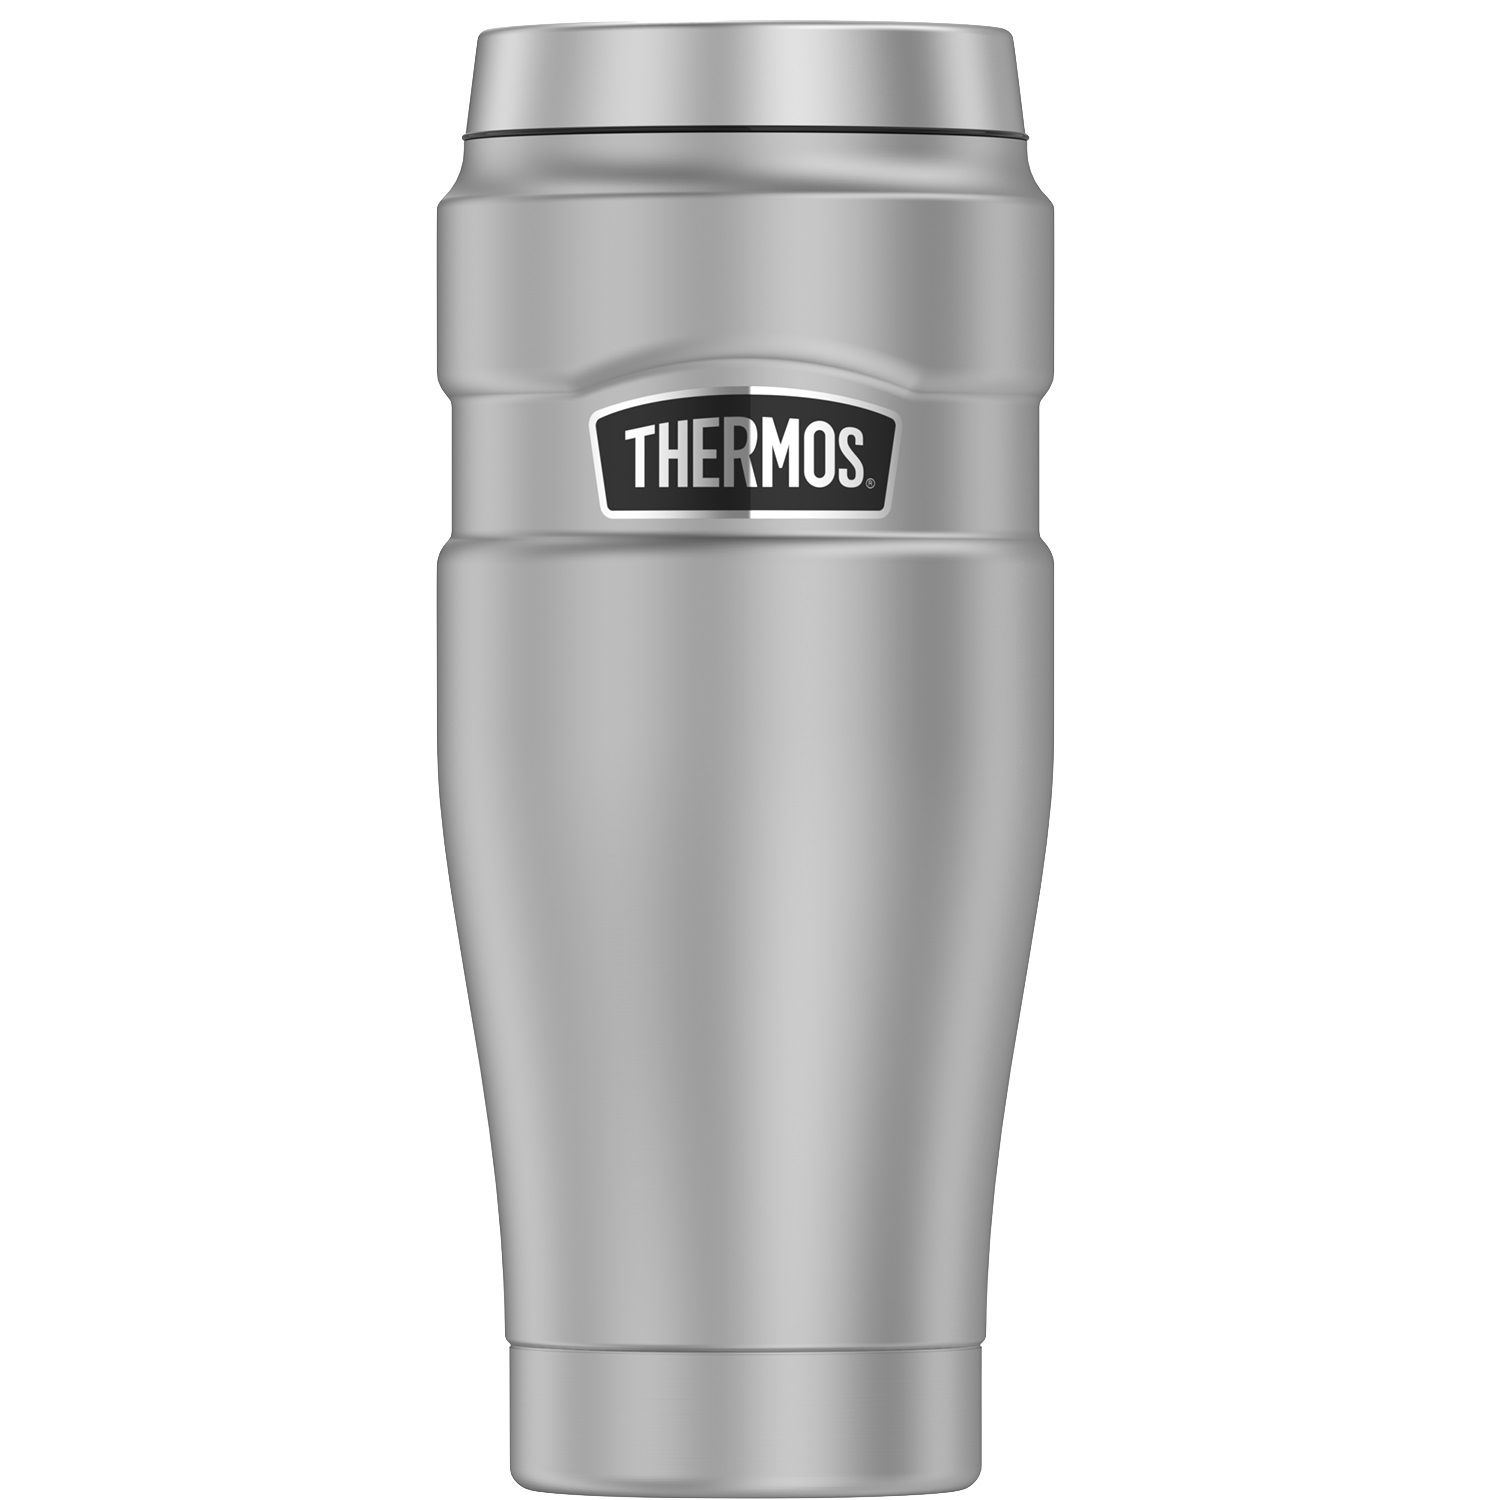 Thermos 16 oz. Stainless Steel Travel Tumbler Silver